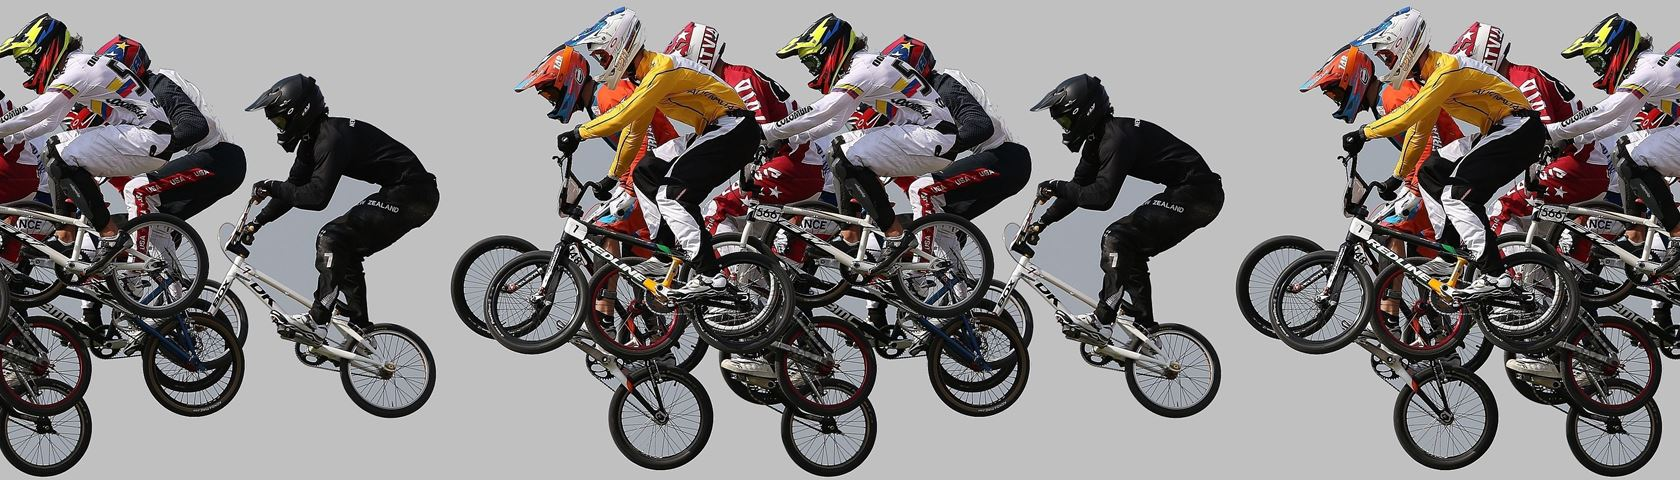 Bmx Race Images Wallpaperfusion By Binary Fortress Software